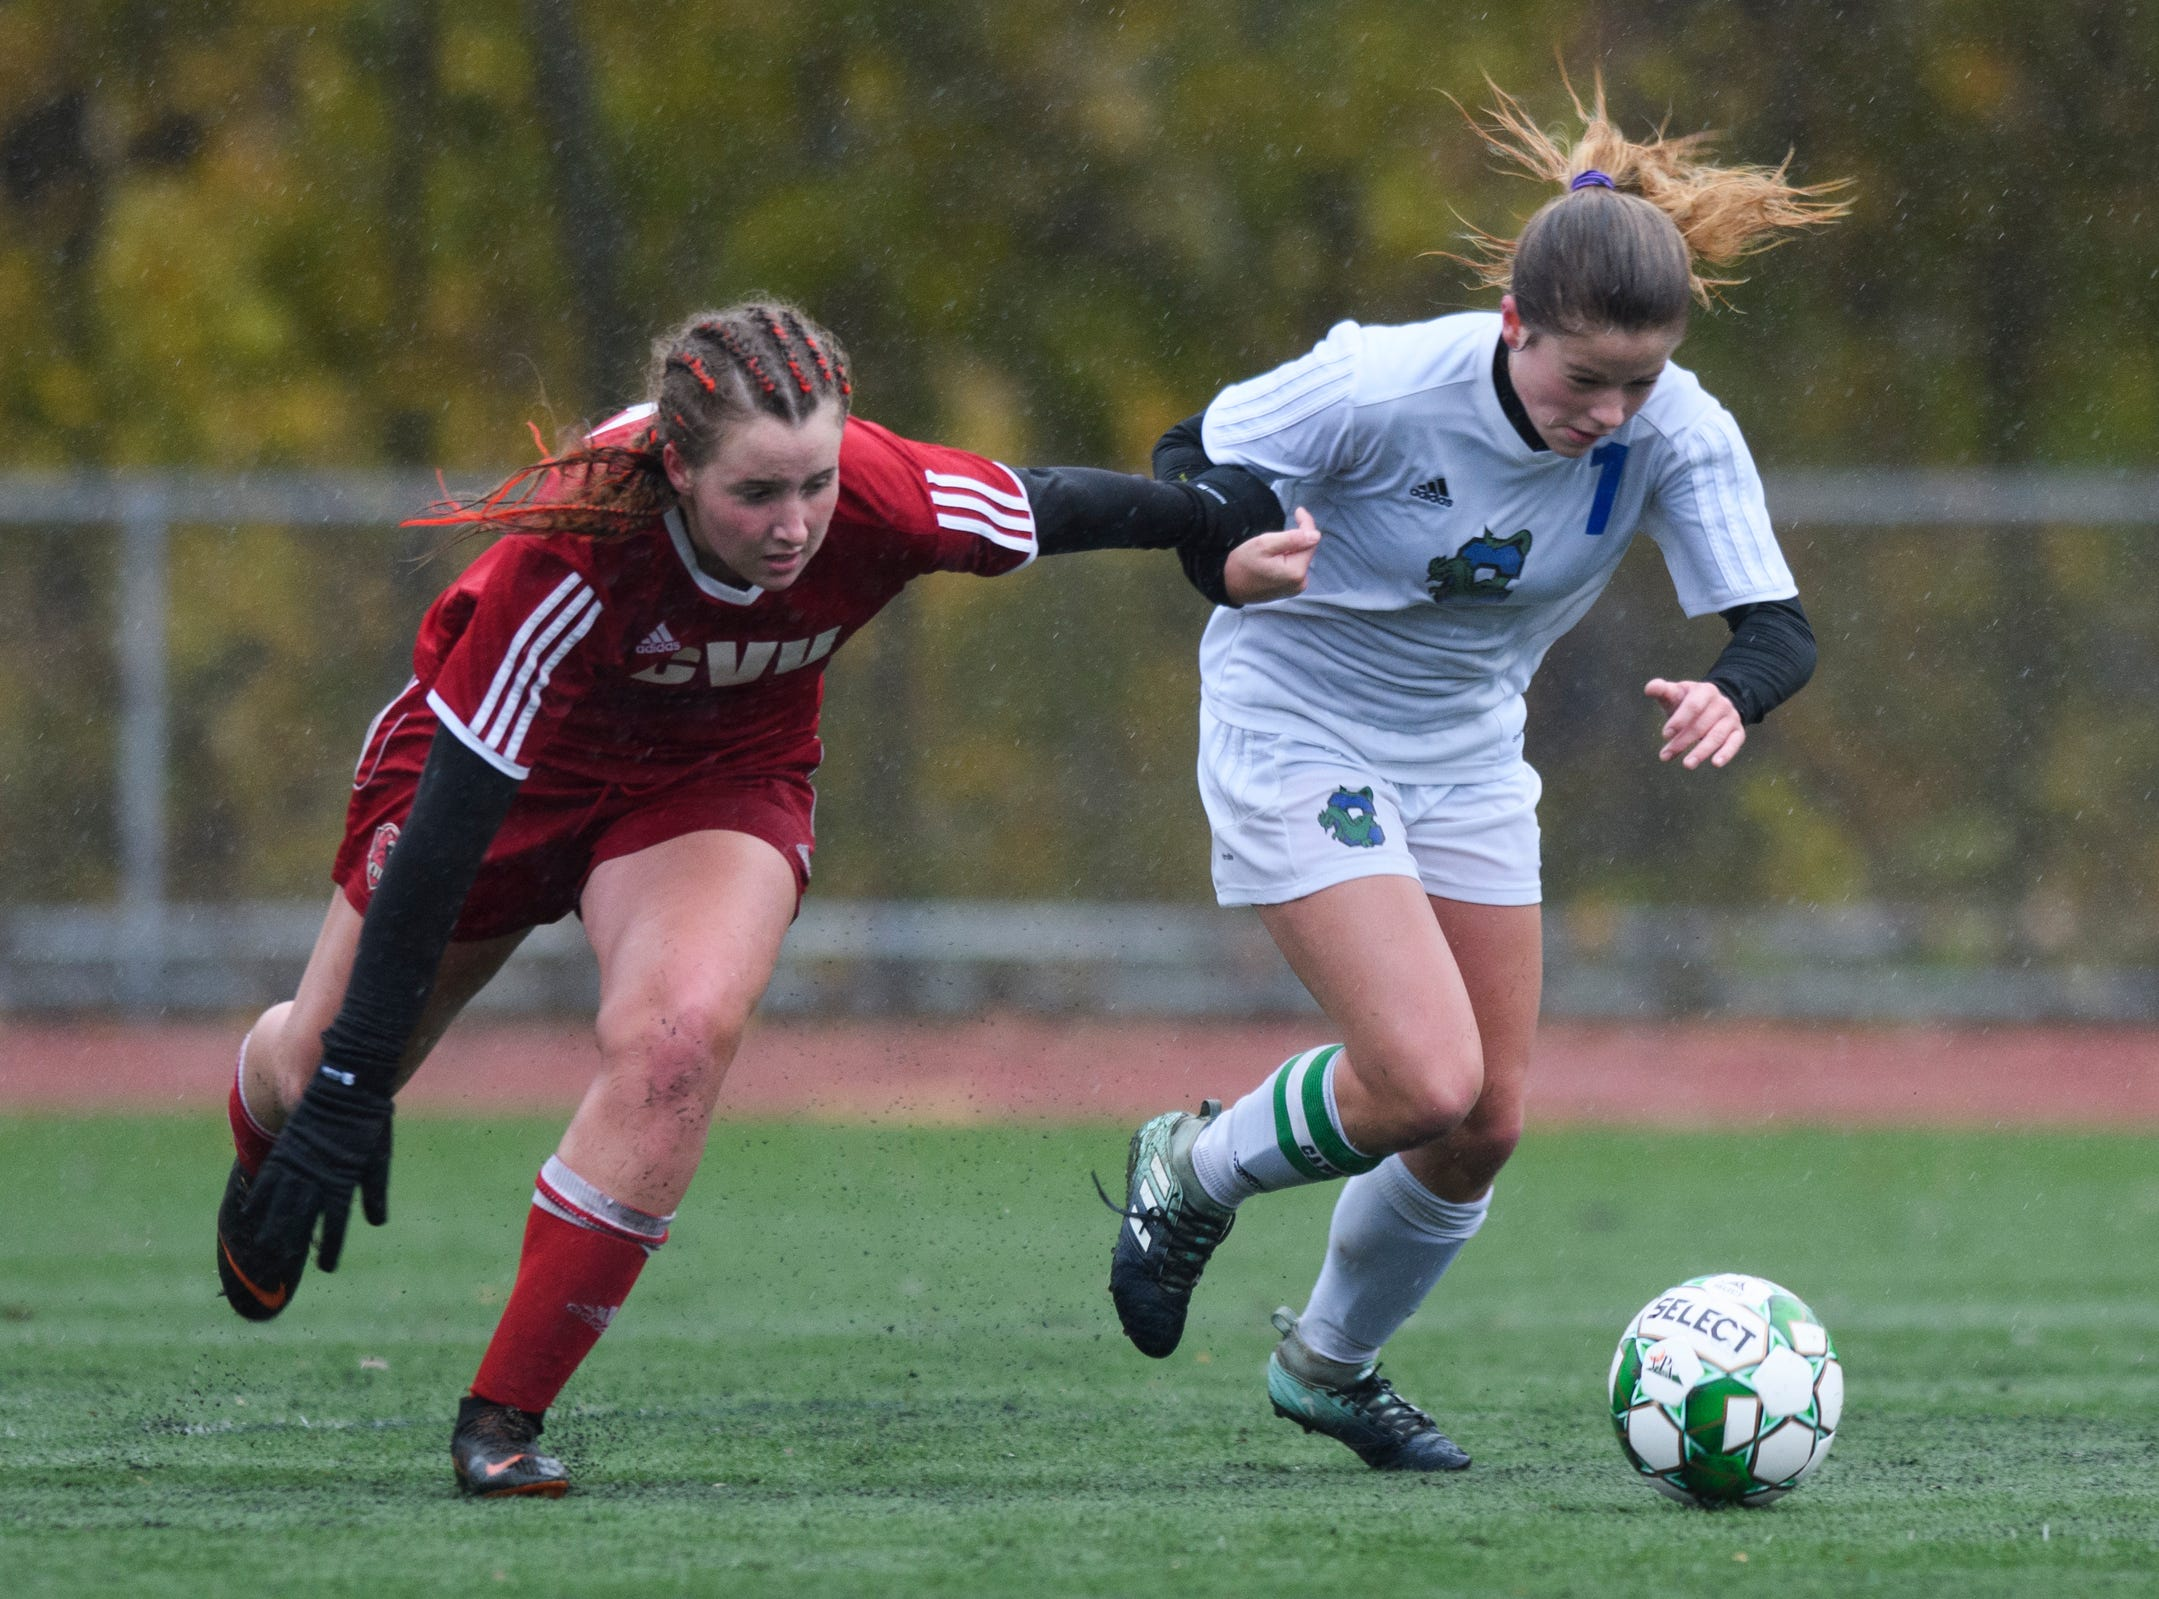 CVU's Olivia Morton (15) and Colchester's Madison Finelli (1) battle for the ball during the division I girls soccer championship game between the Colchester Lakers and the Champlain Valley Union Redhawks at Buck Hard Field on Saturday morning November 3, 2018 in Burlington.